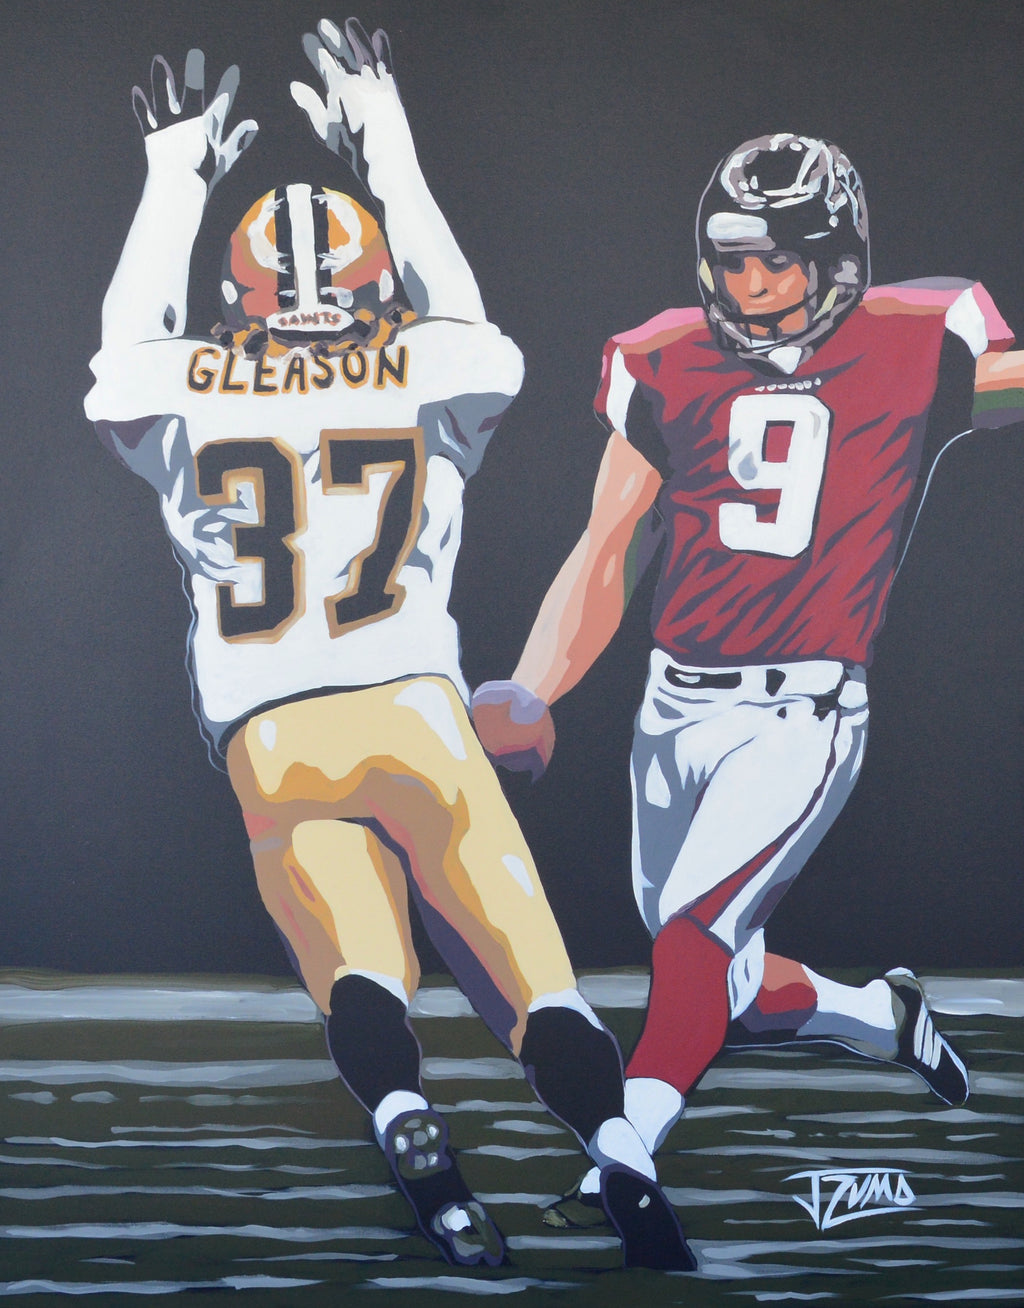 Steve Gleason - The Block